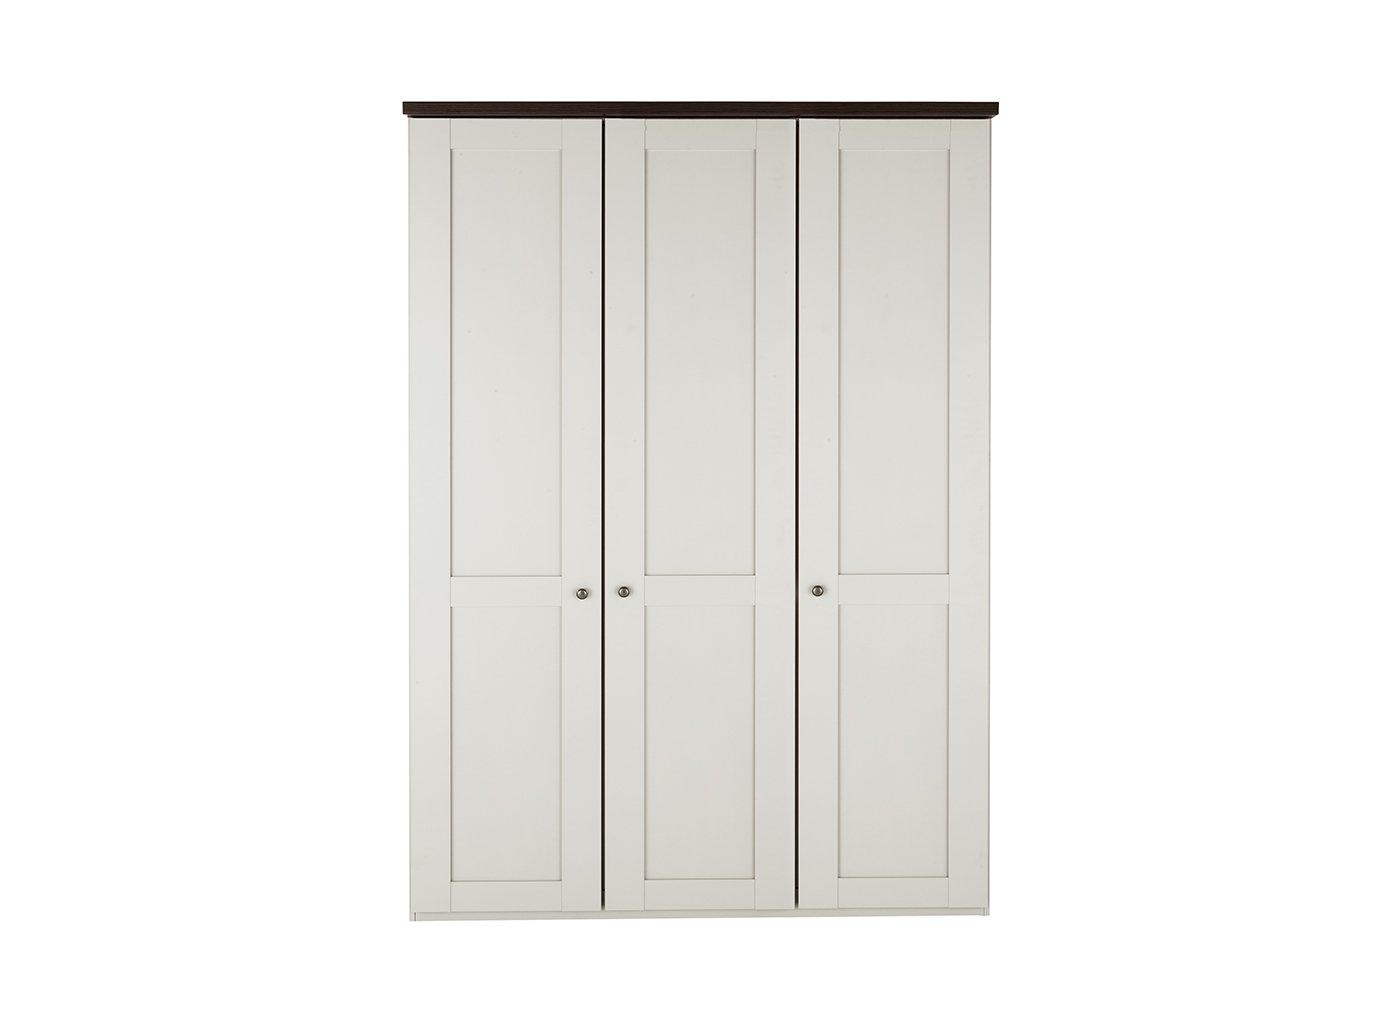 sloane-3-door-wardrobe---champagne-and-dark-wood